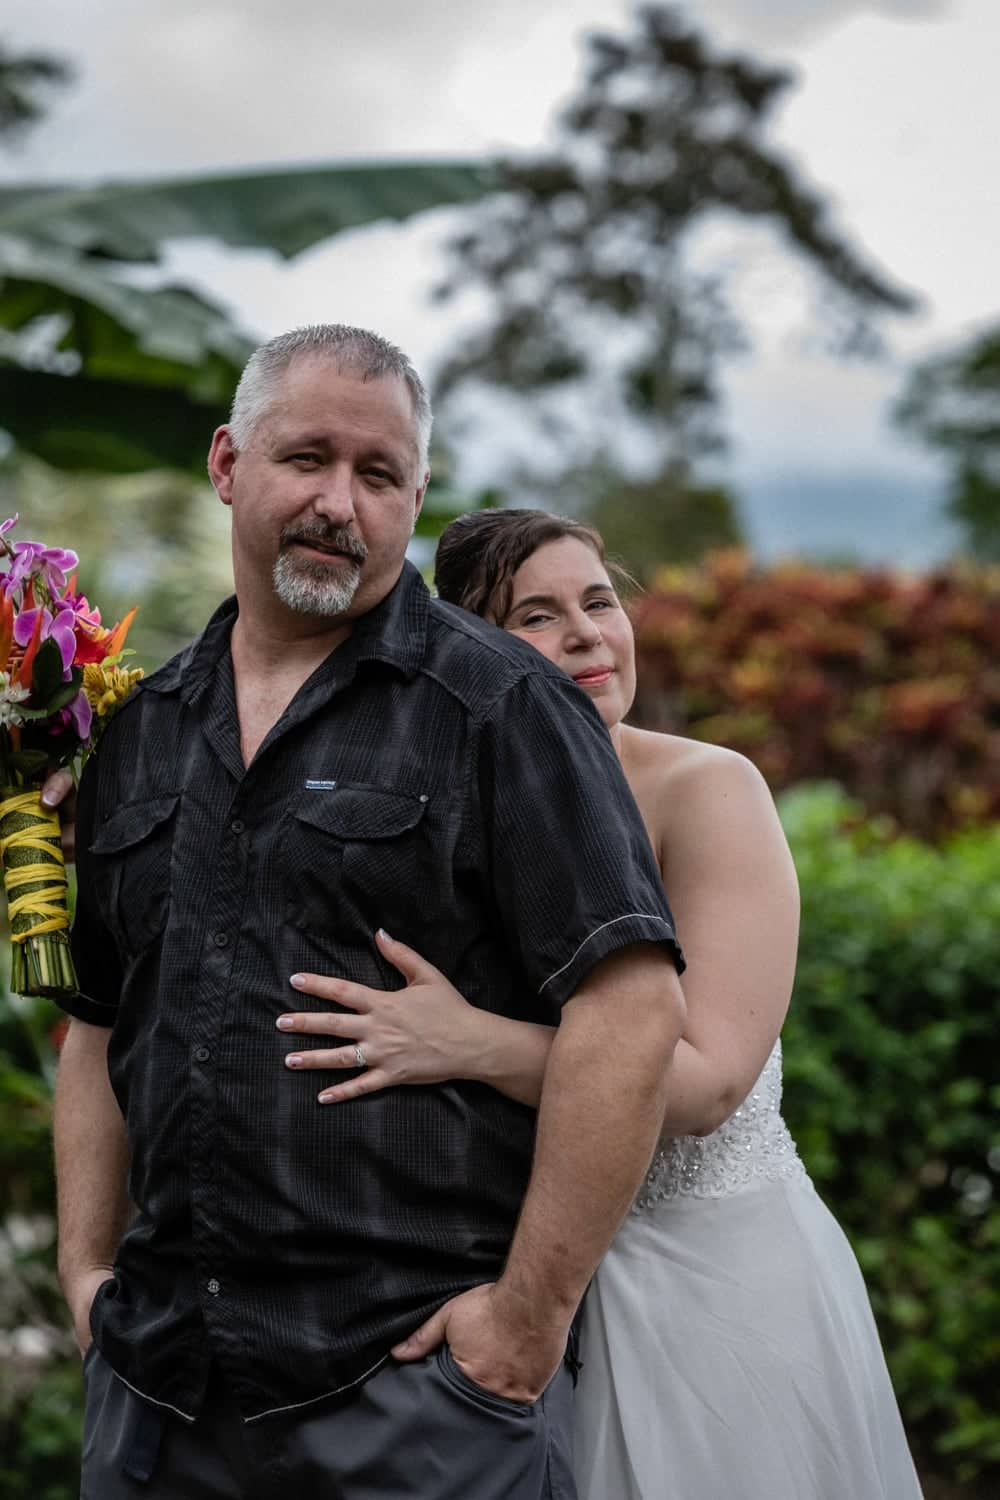 Wedding photo of bride and groom in tropical garden in Costa Rica.